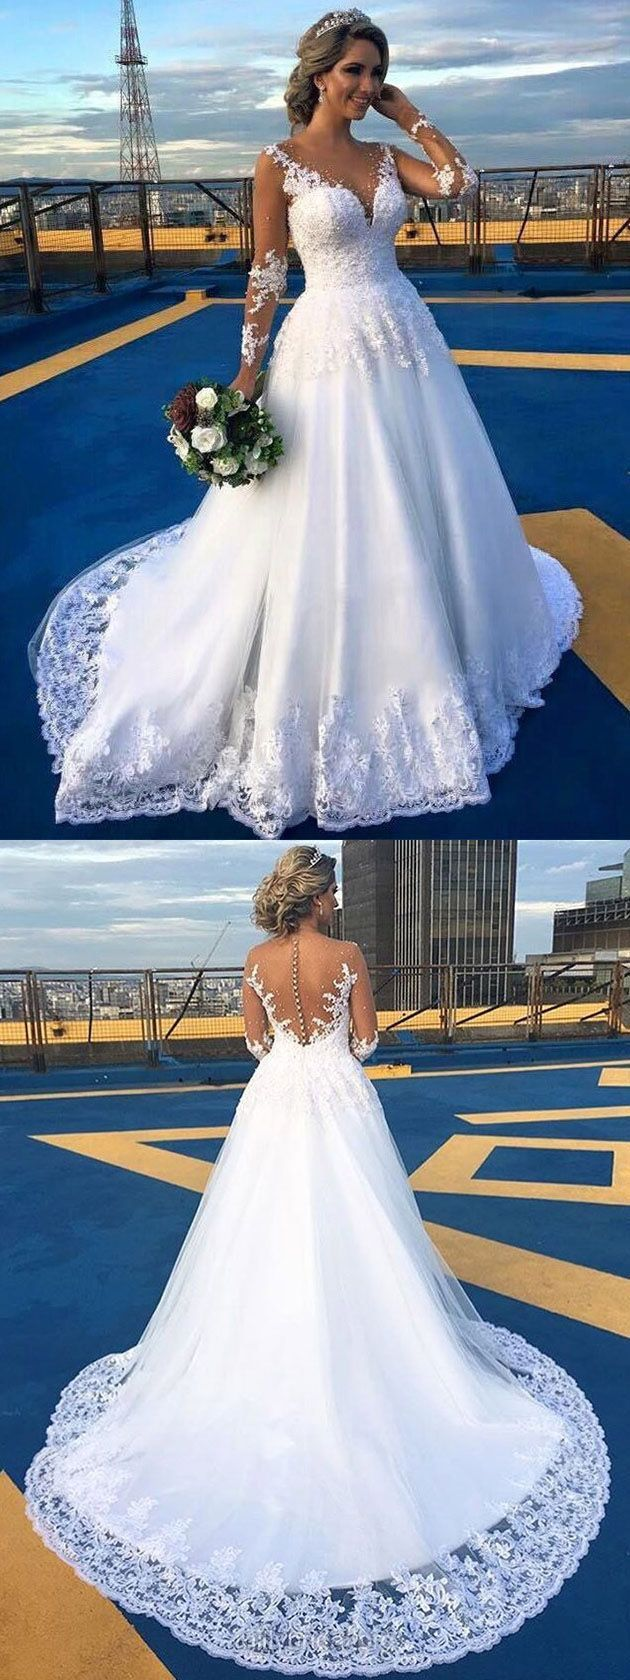 Lace wedding dress tulle november 2018 Lace Wedding Dresses Long Sleeve White Bridal Gowns AlineModest